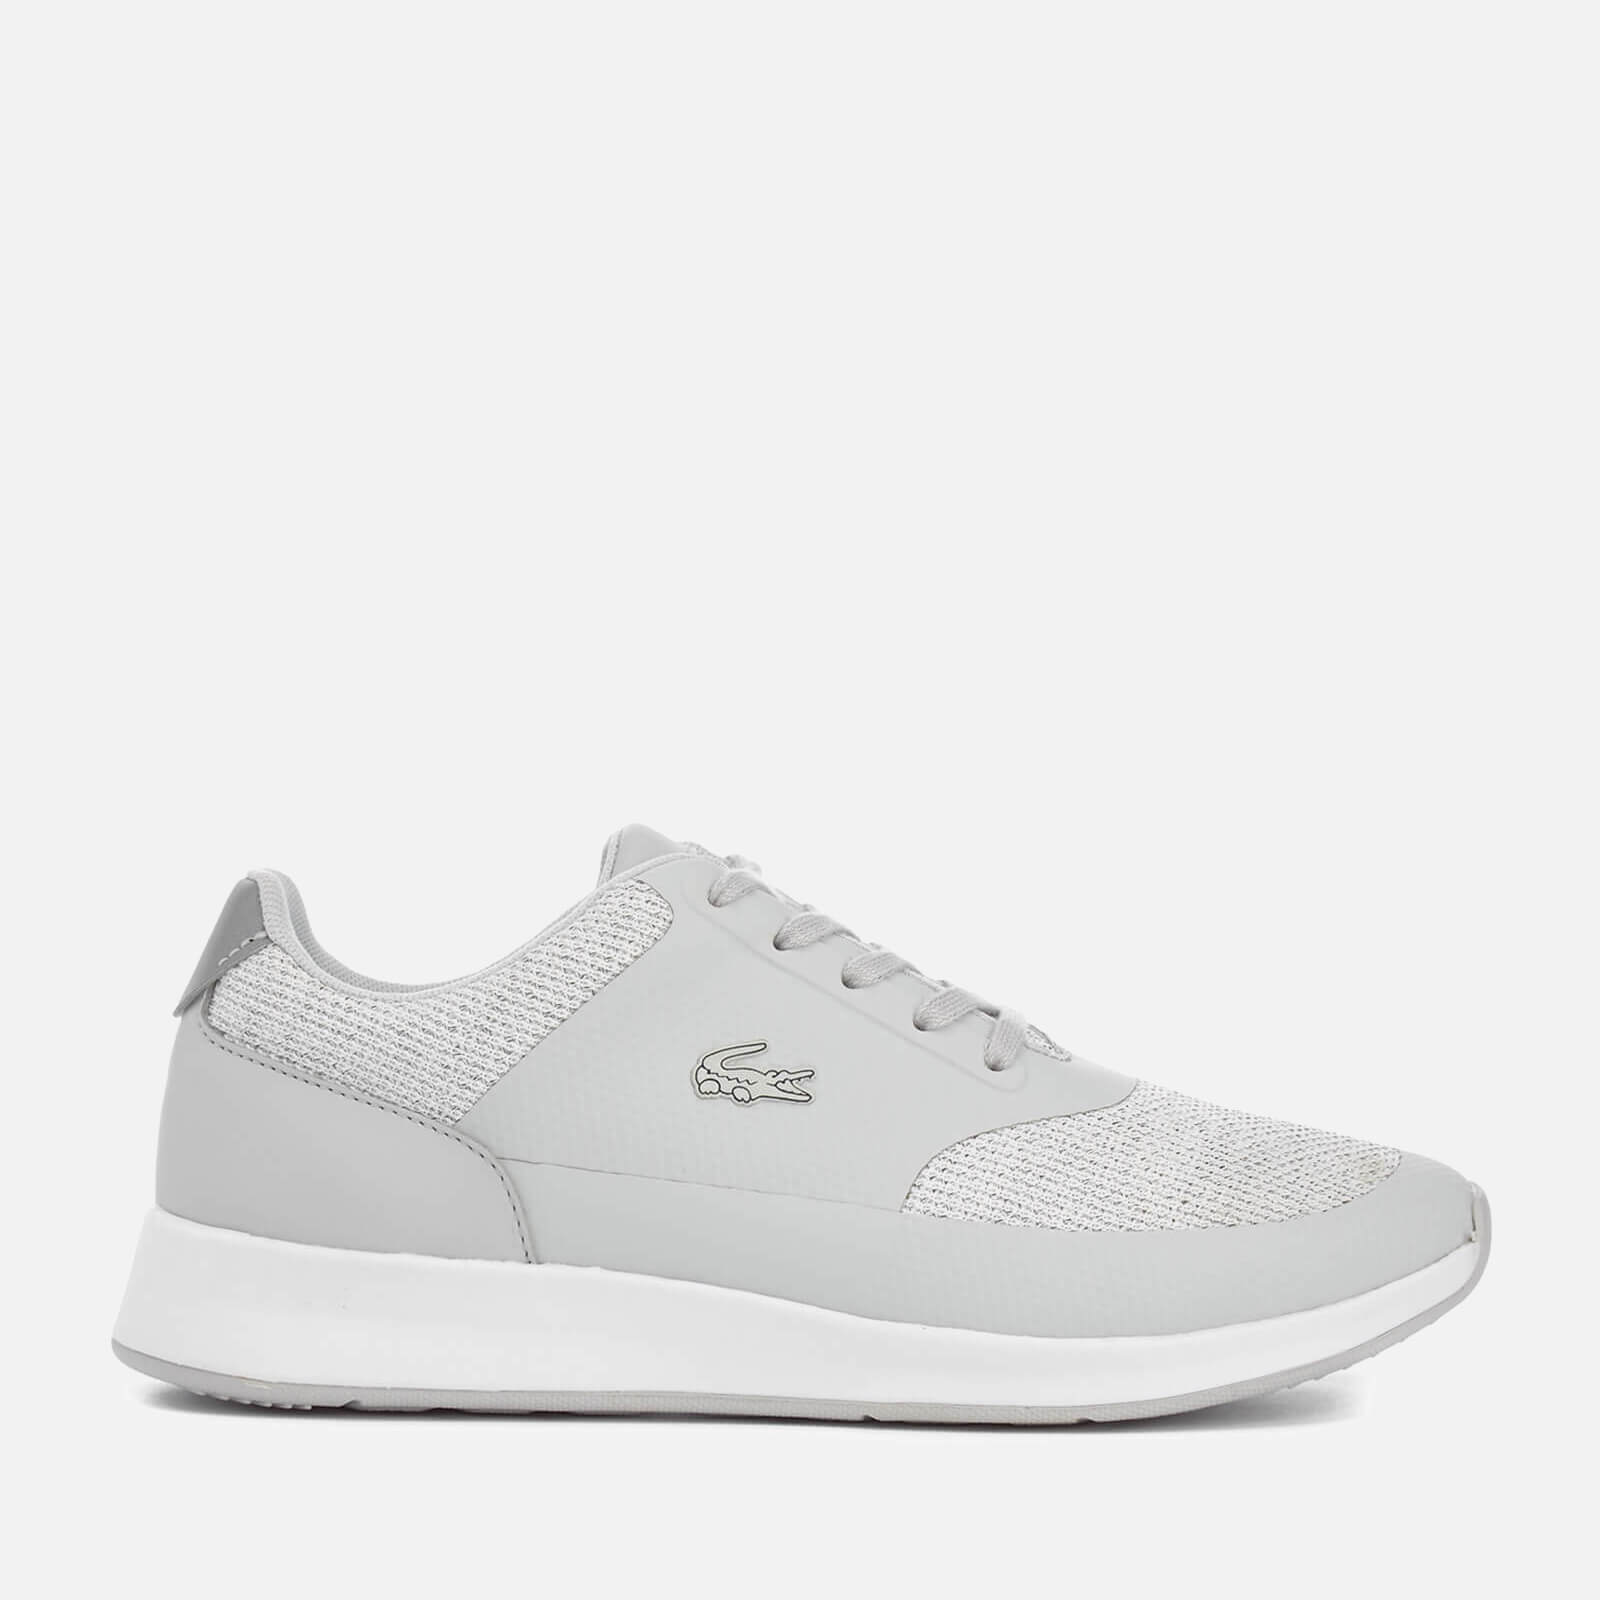 5211e1b80 Lacoste Women s Chaumont Lace 117 1 Trainers - Grey - Free UK Delivery over  £50